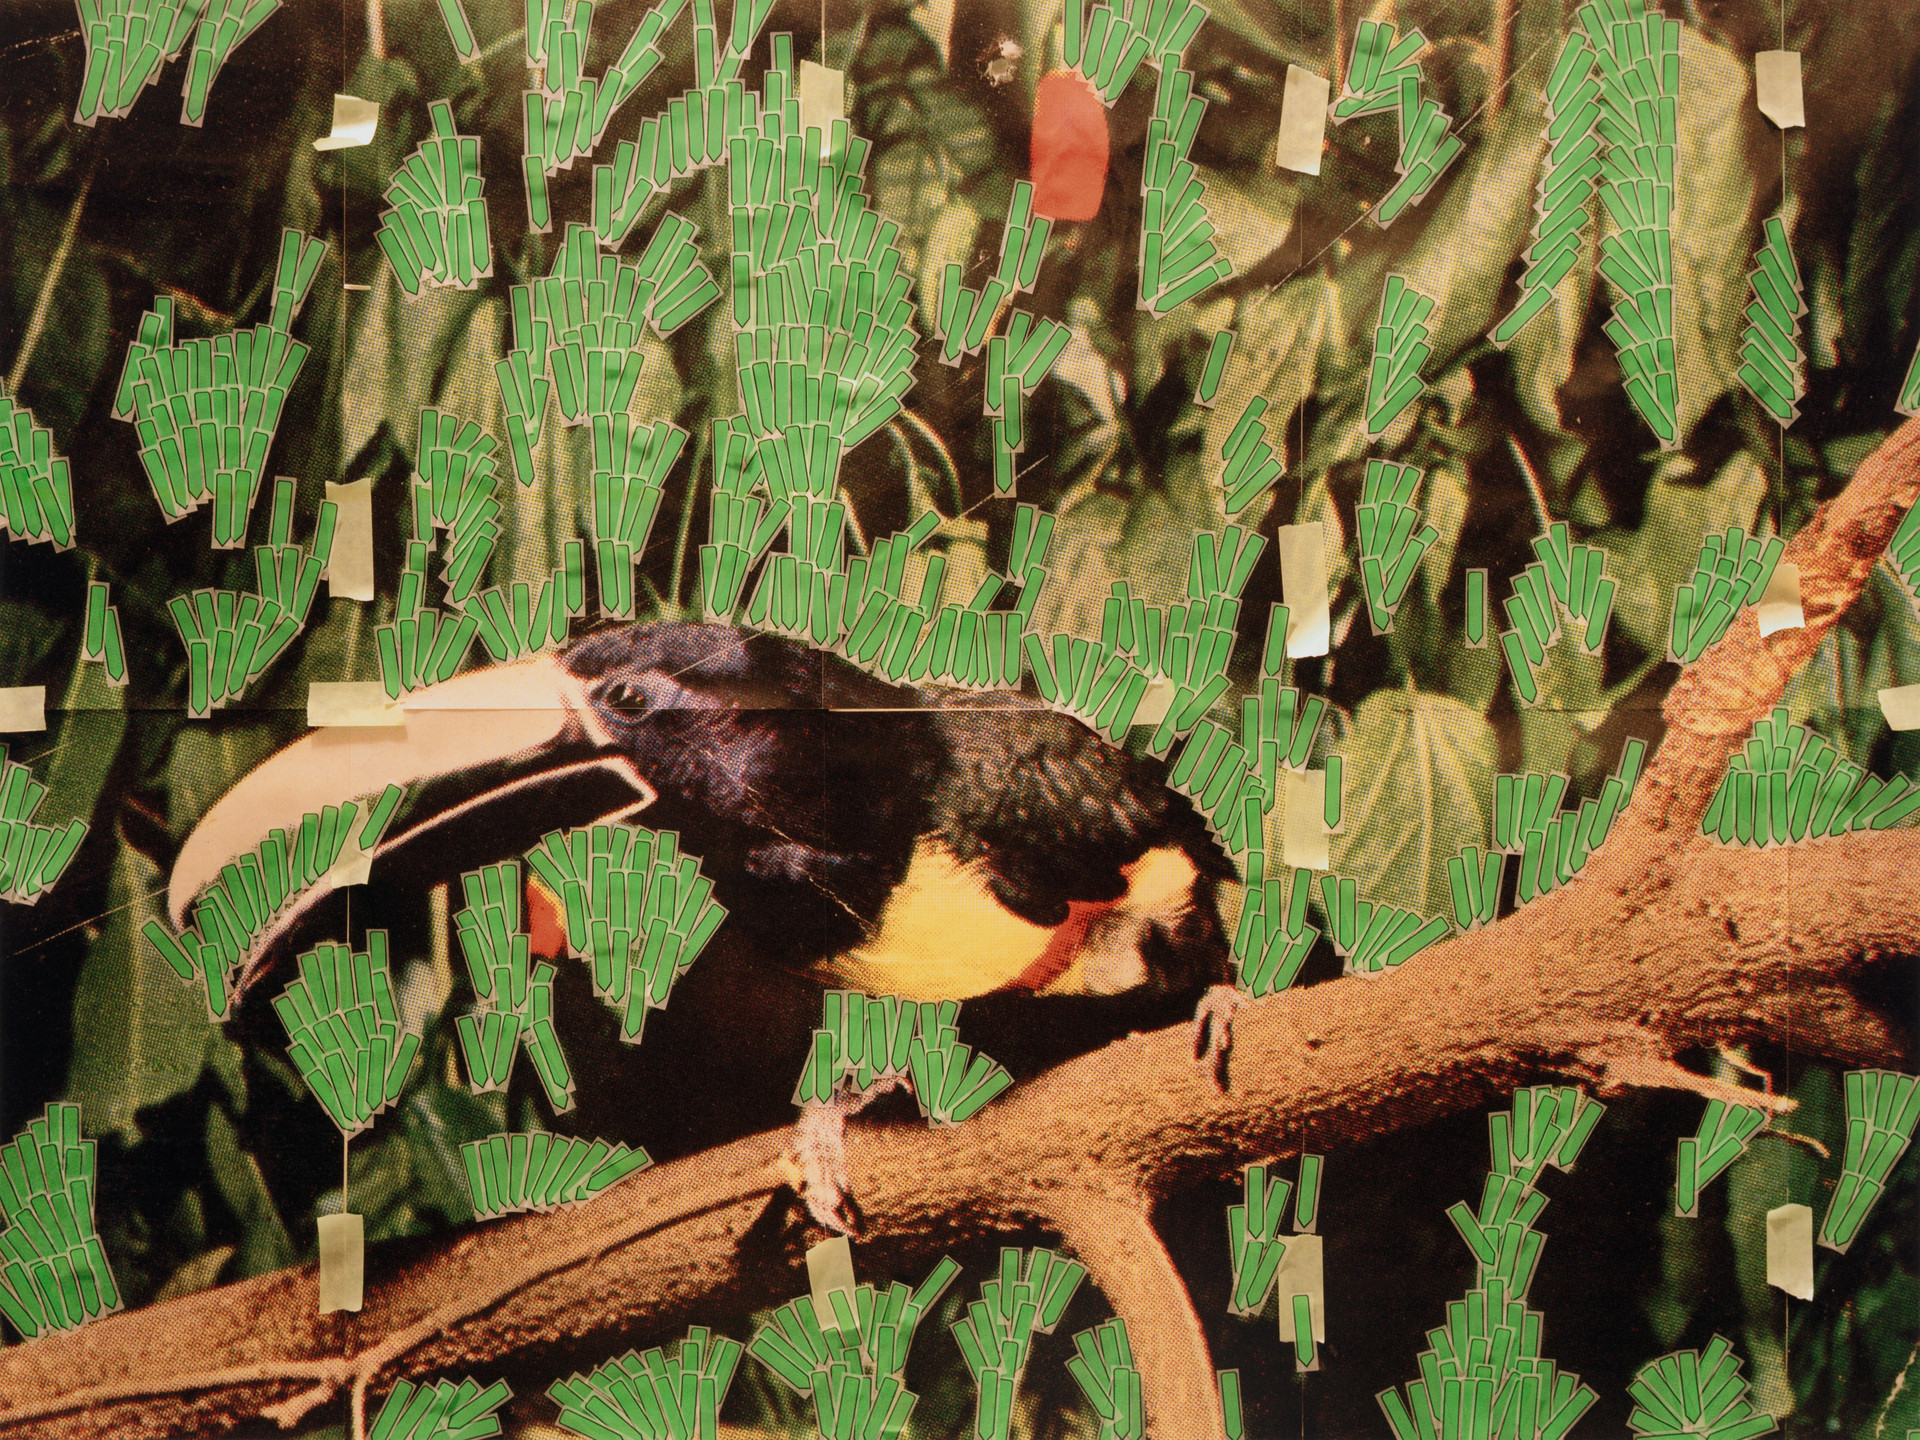 Sara Cwynar. Toucan in Nature (Post it Notes). 2013